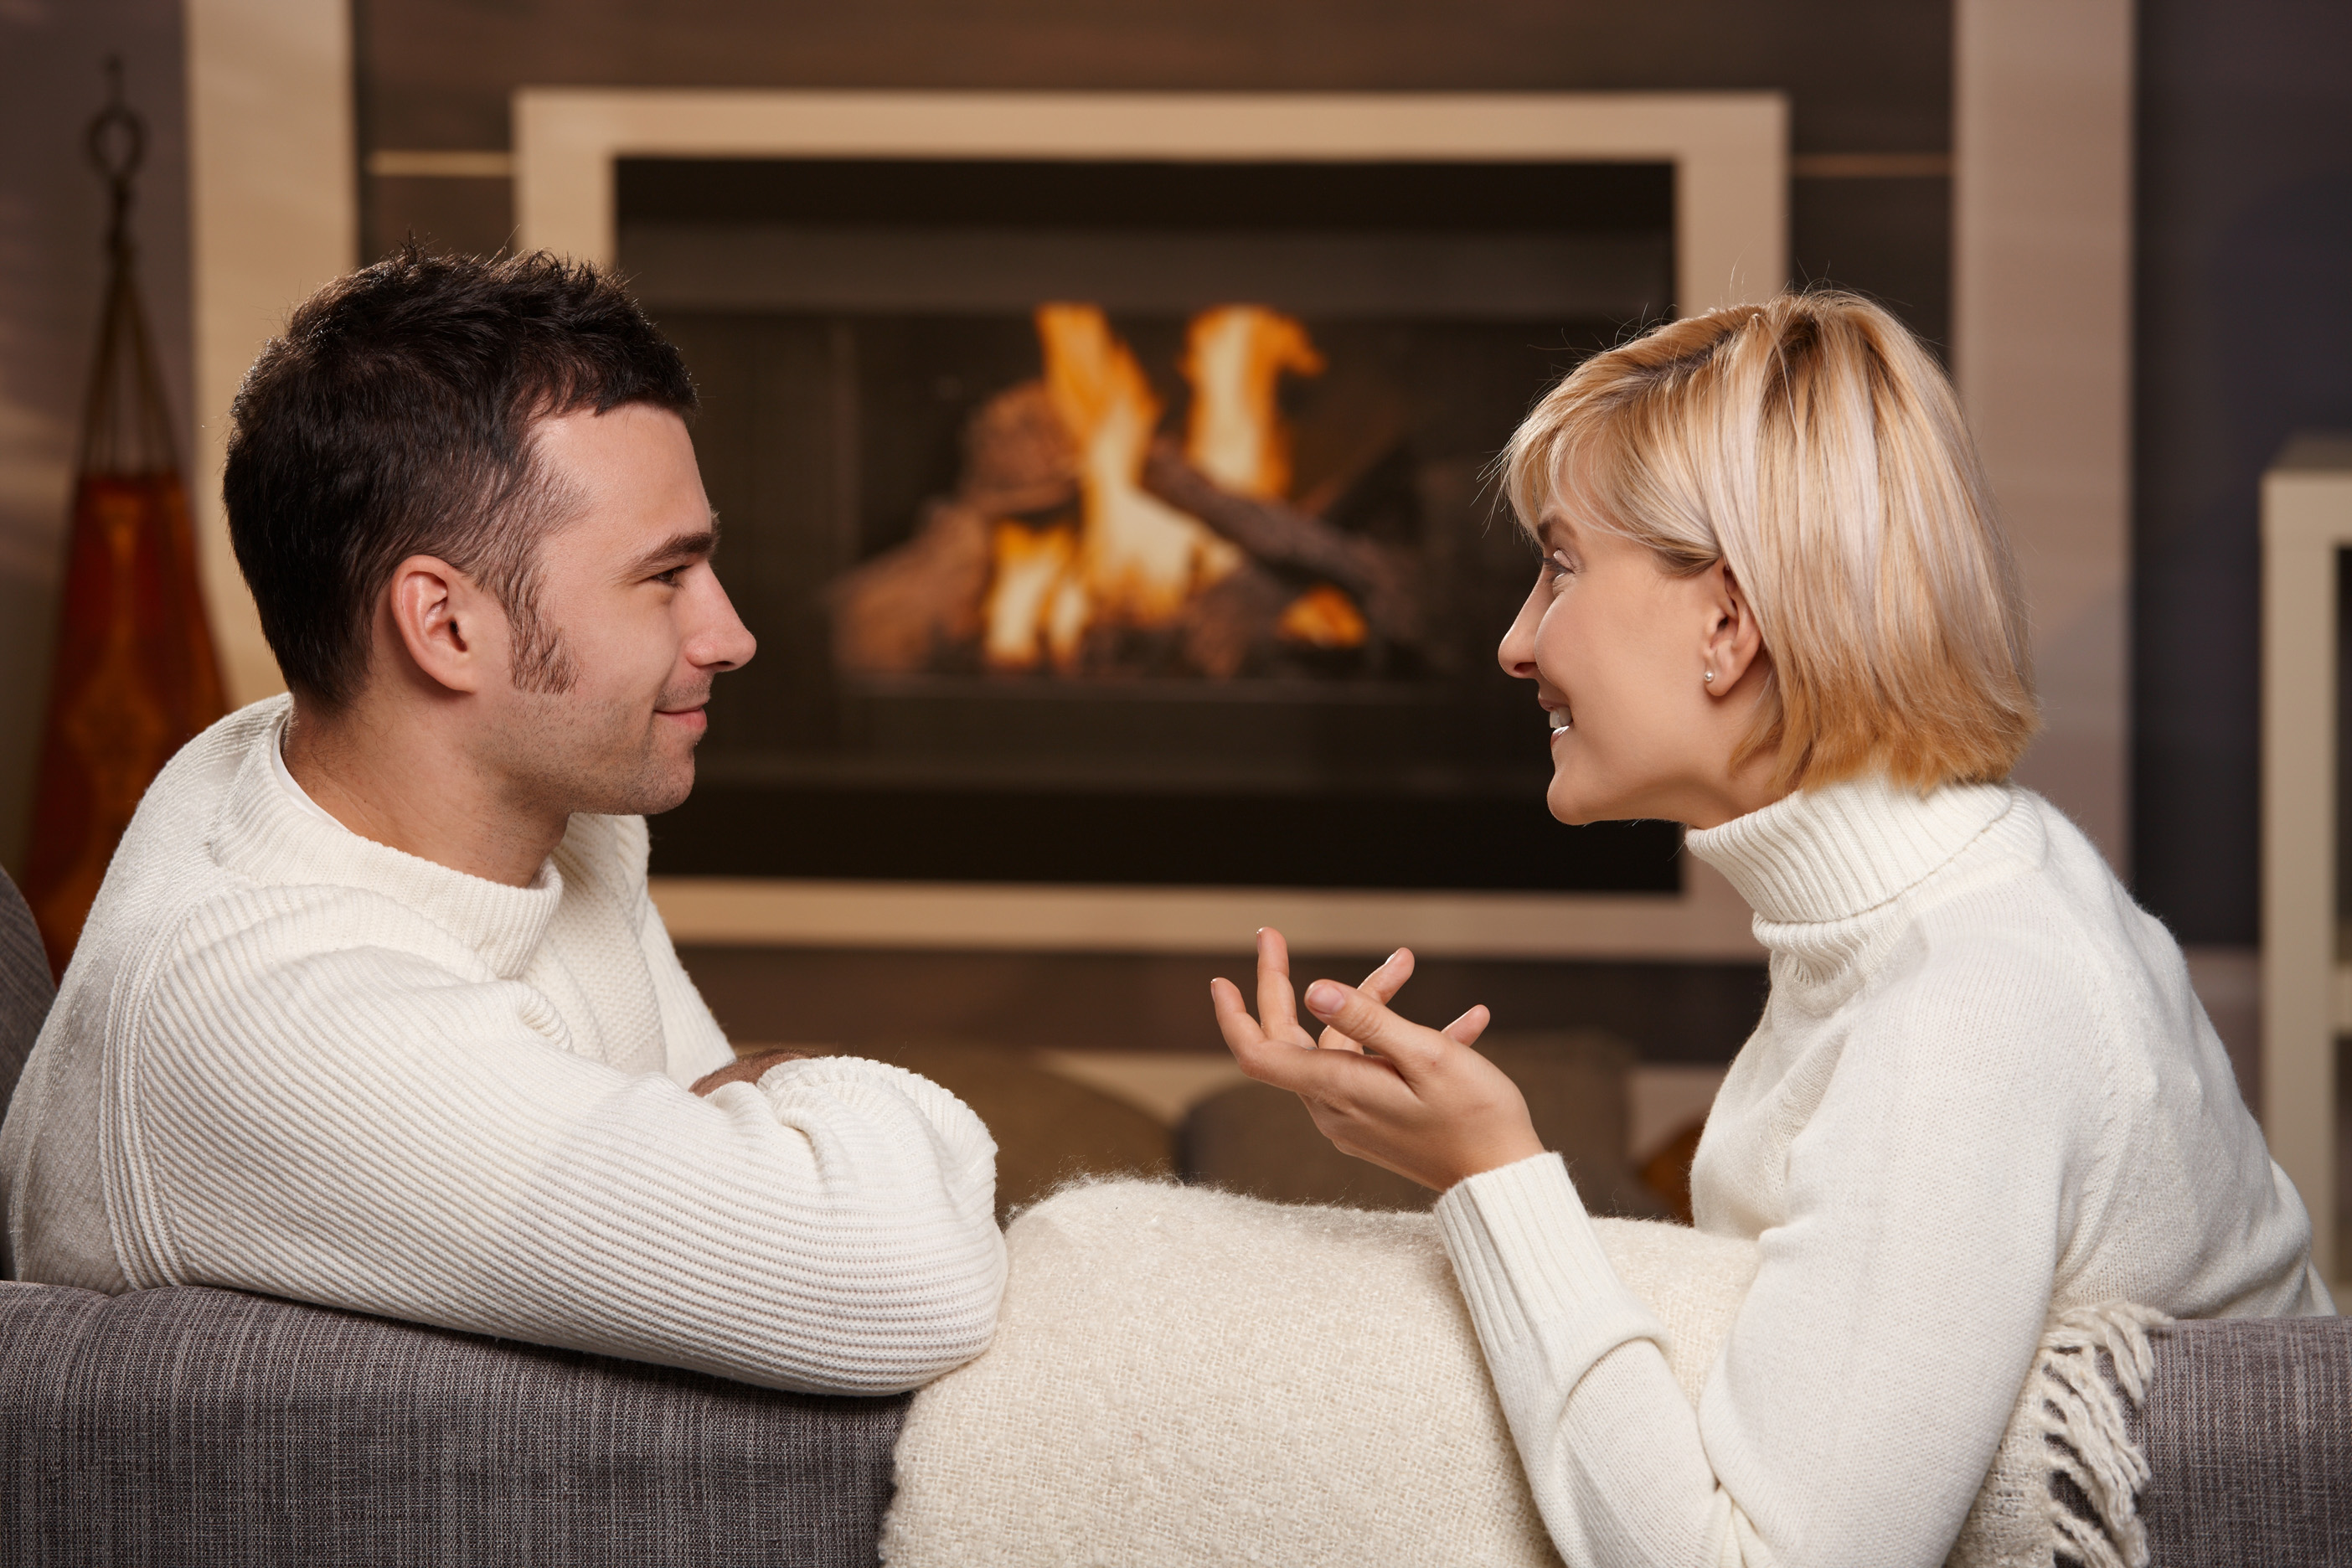 Young romantic couple sitting on sofa in front of fireplace at home, looking at each other, talking.